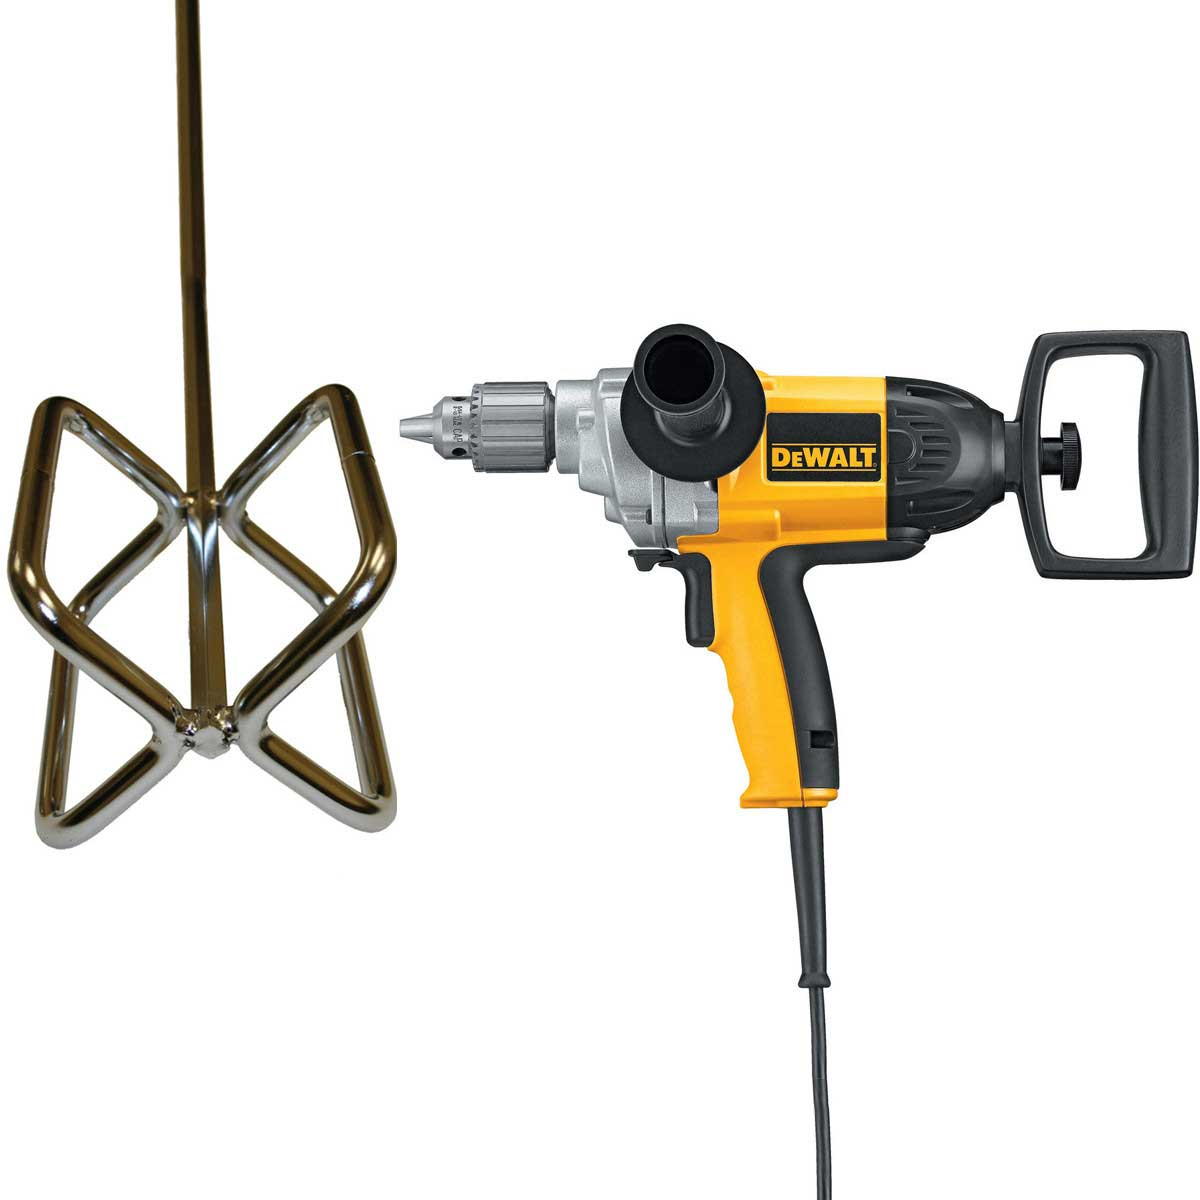 DW130V Dewalt 1/2 in. Mortar Mixing Drill With DTA mud beater Mixing Paddle